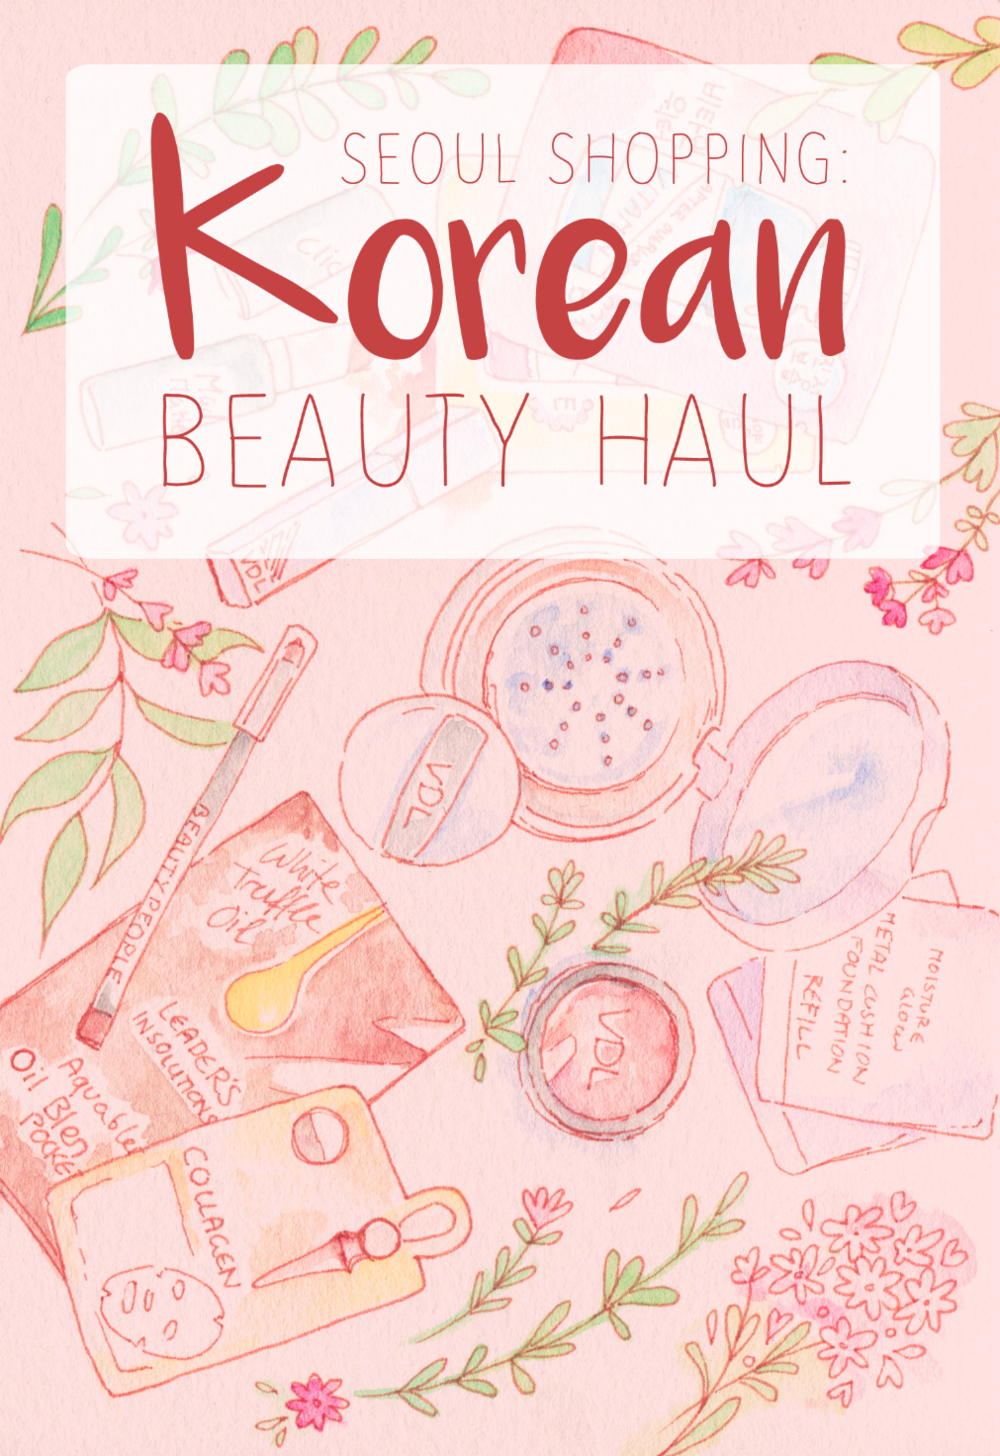 Shopping in Seoul: Makeup and Skincare Haul and Mini Reviews. K-Beauty, VDL, Clio, Beauty People and lots of sheet masks.